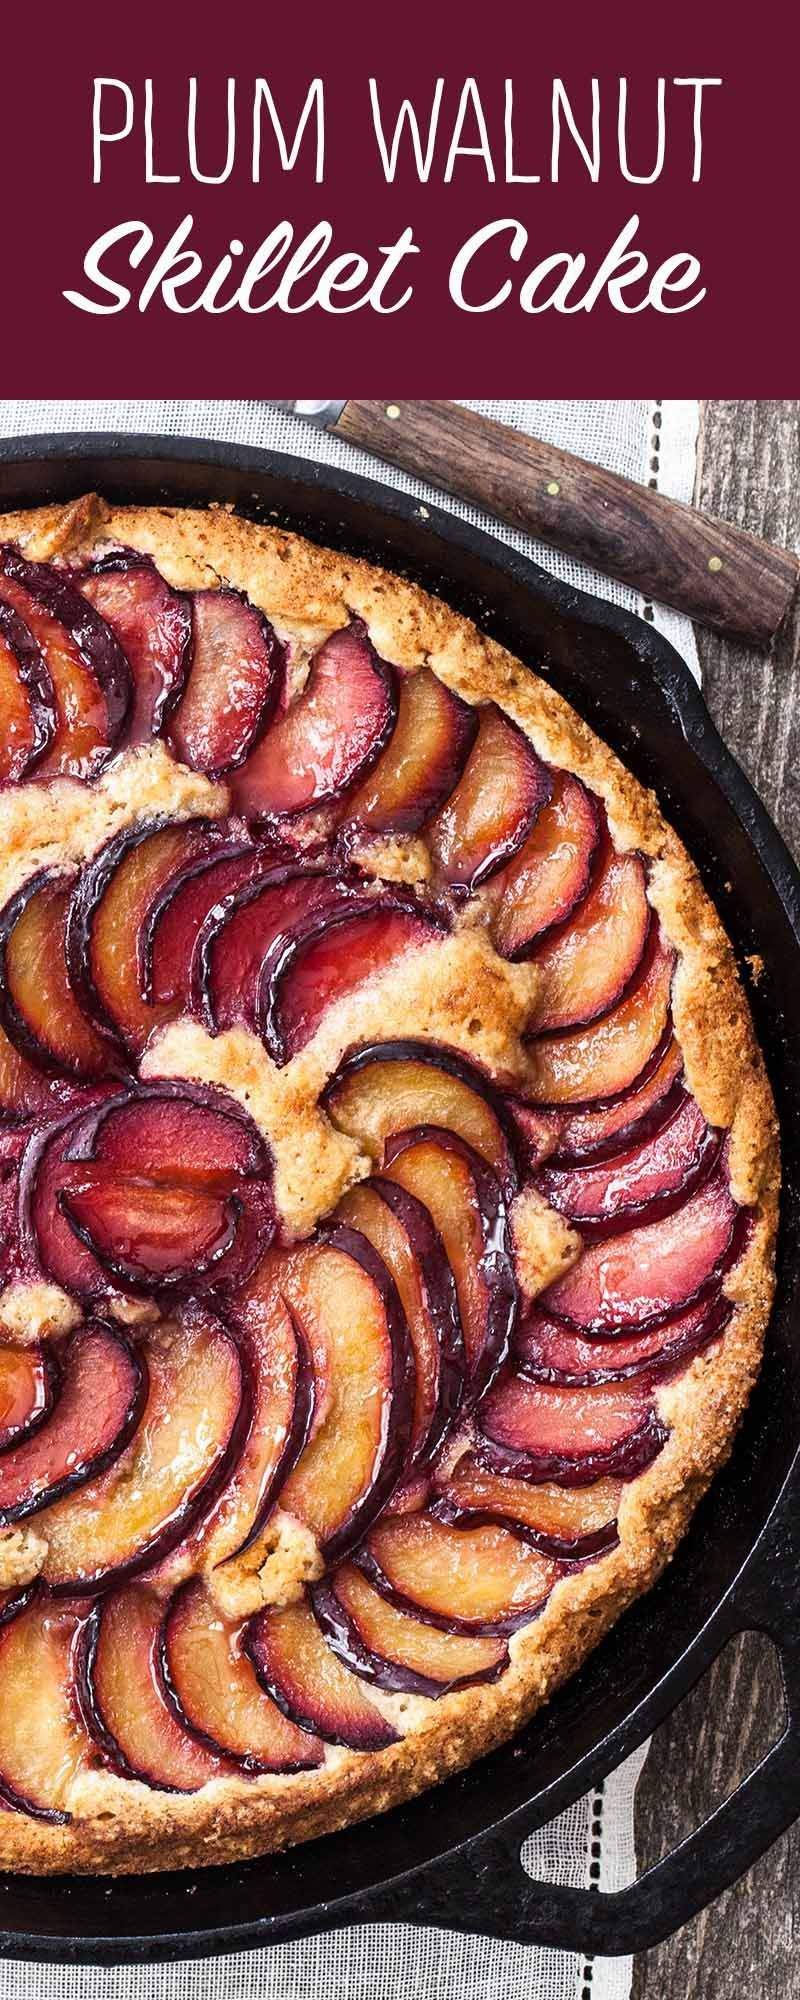 Plum Walnut Skillet Cake is almost as easy at it is gorgeous. Batter takes minutes to make in the food processor. Use any variety of plums you like.